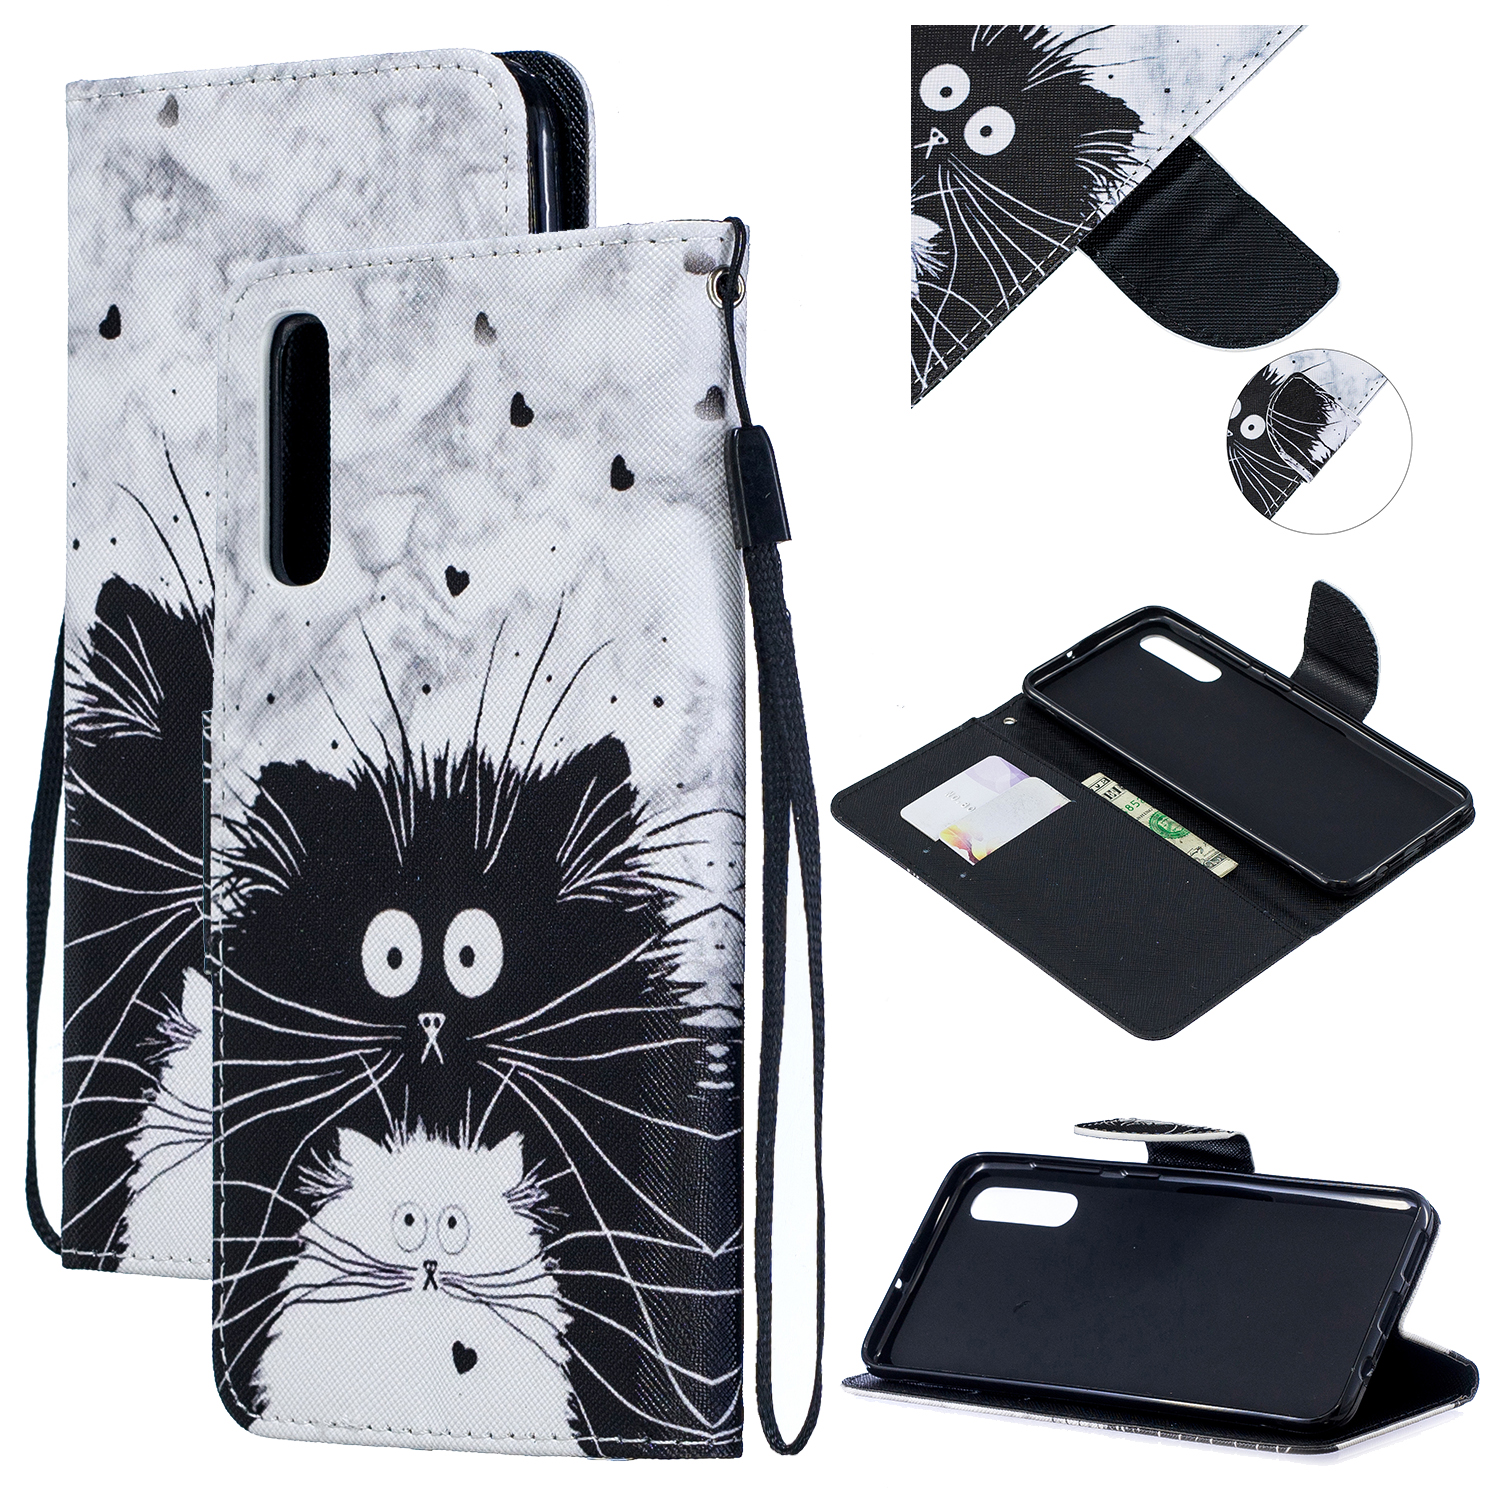 For Samsung A50/A70 Smartphone Case Overall Protective Phone Shell Lovely PU Leather Cellphone Cover with Card Slots  Black white cat